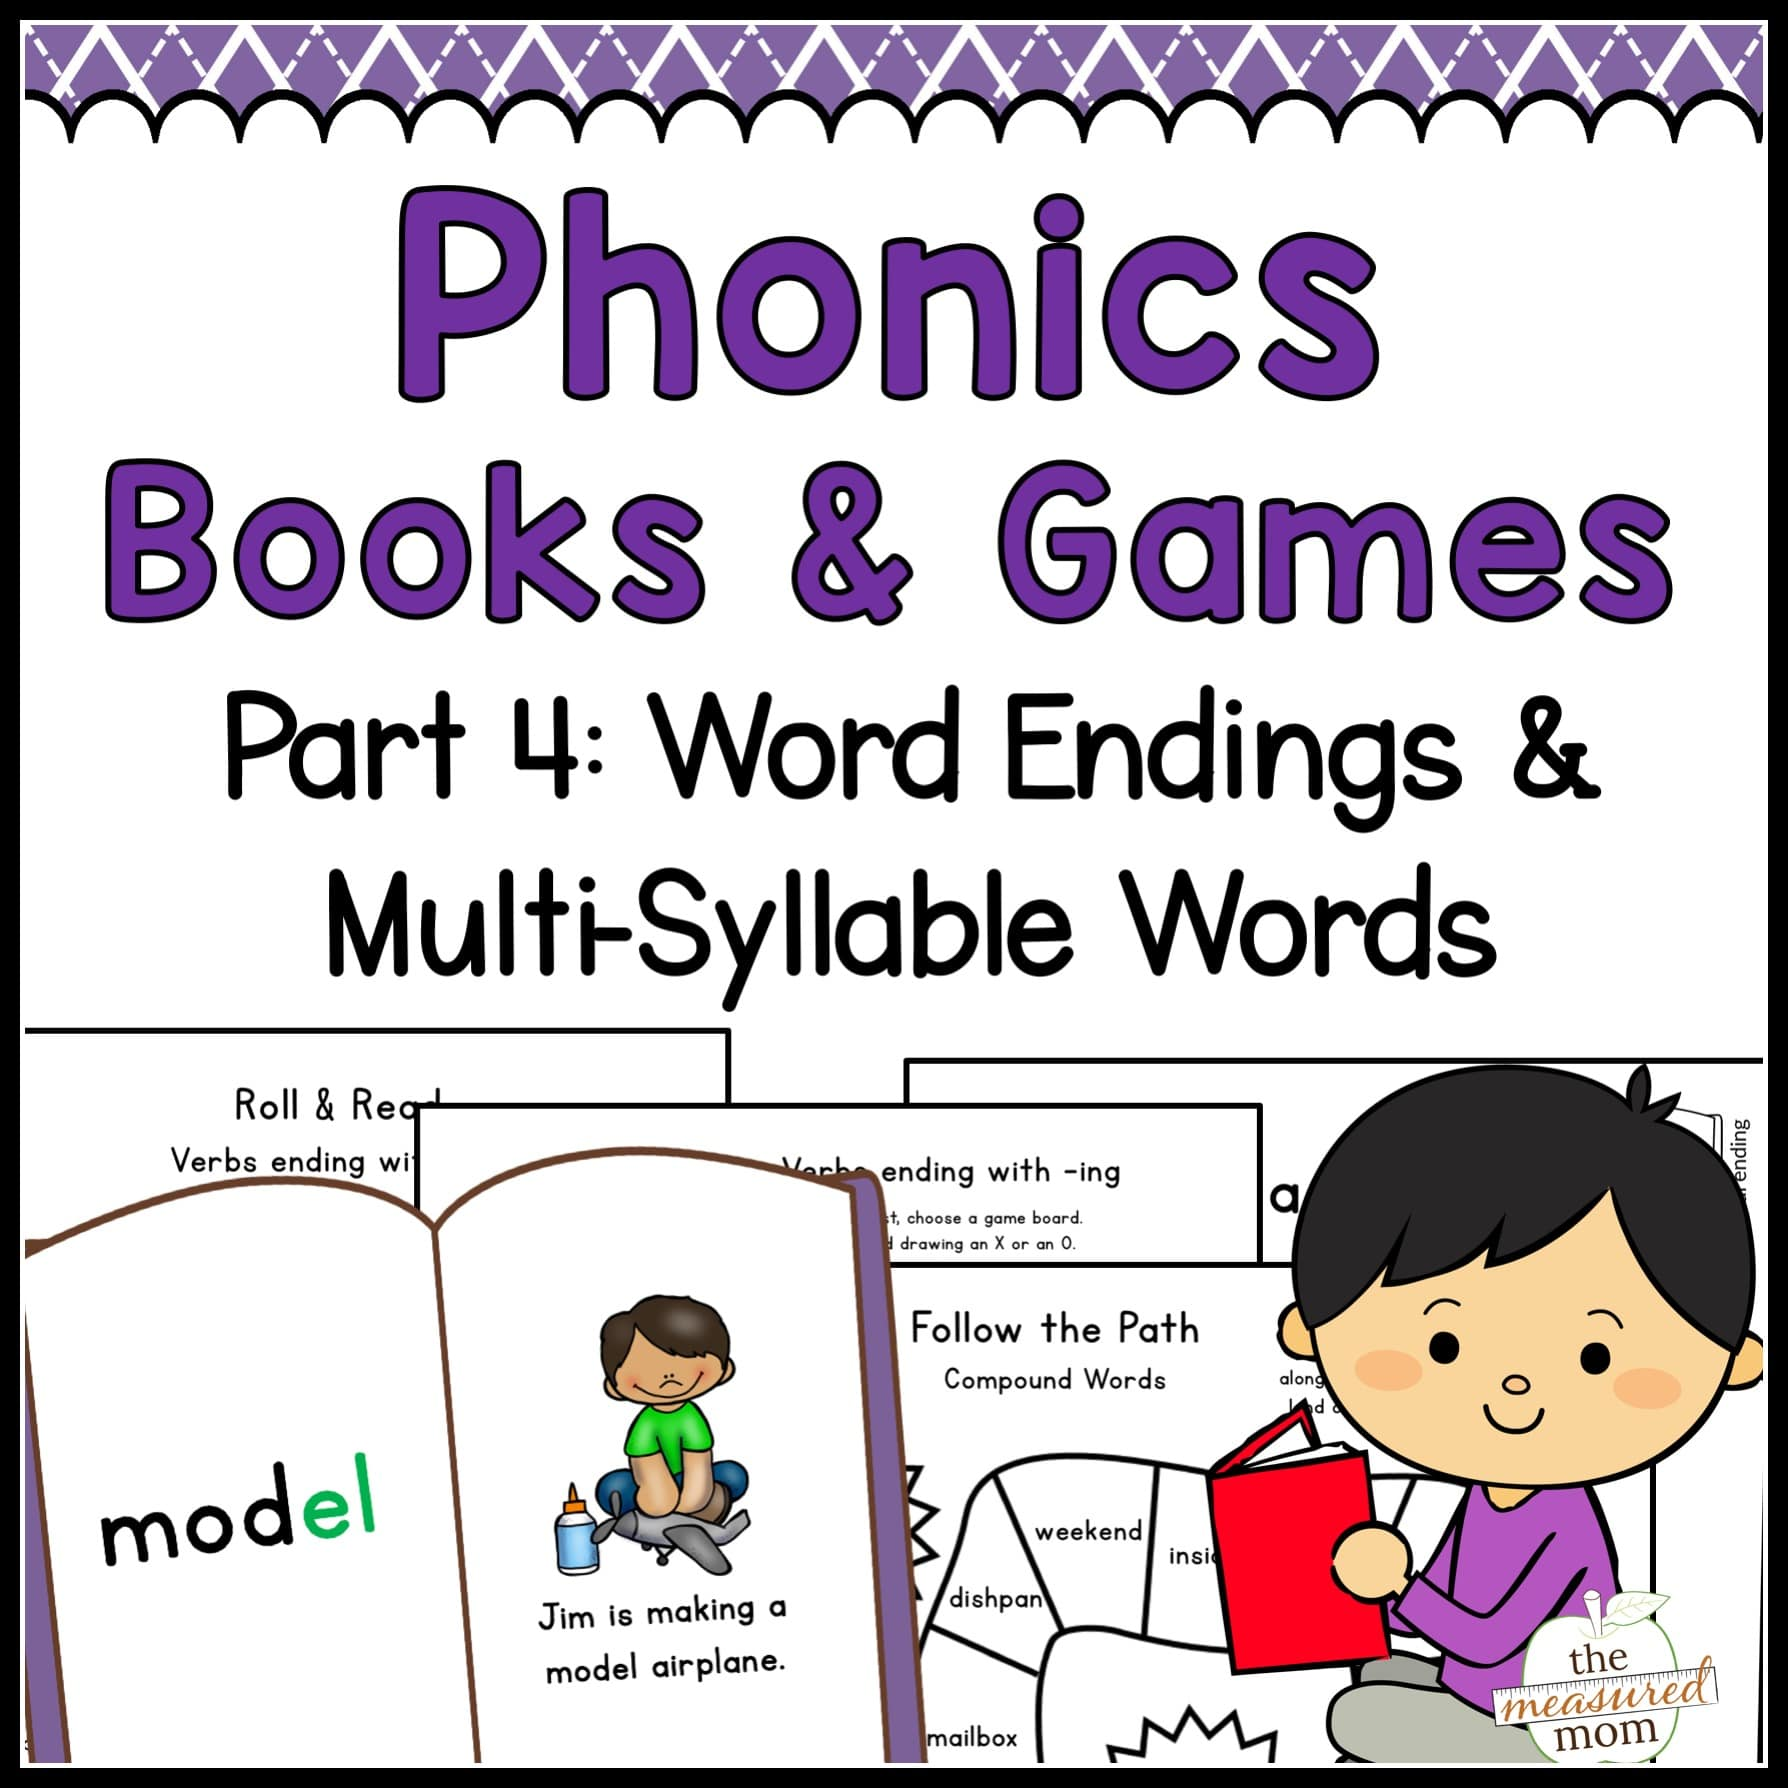 photograph regarding Syllable Games Printable named Phonics Textbooks Online games: Term Endings Multi-Syllable Words and phrases - Distinctive Provide